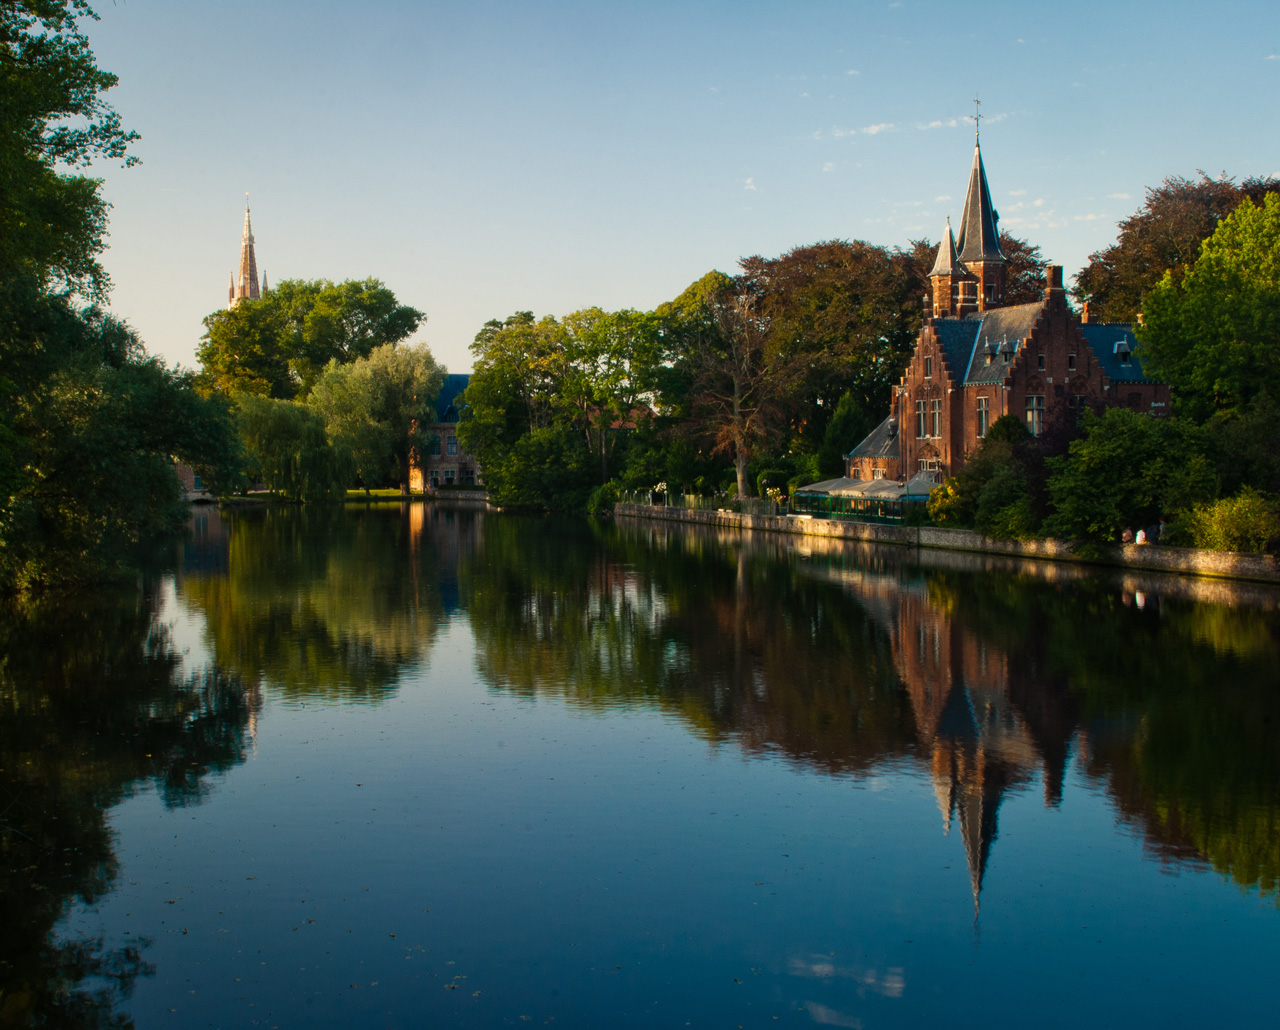 Photo: Minnewater